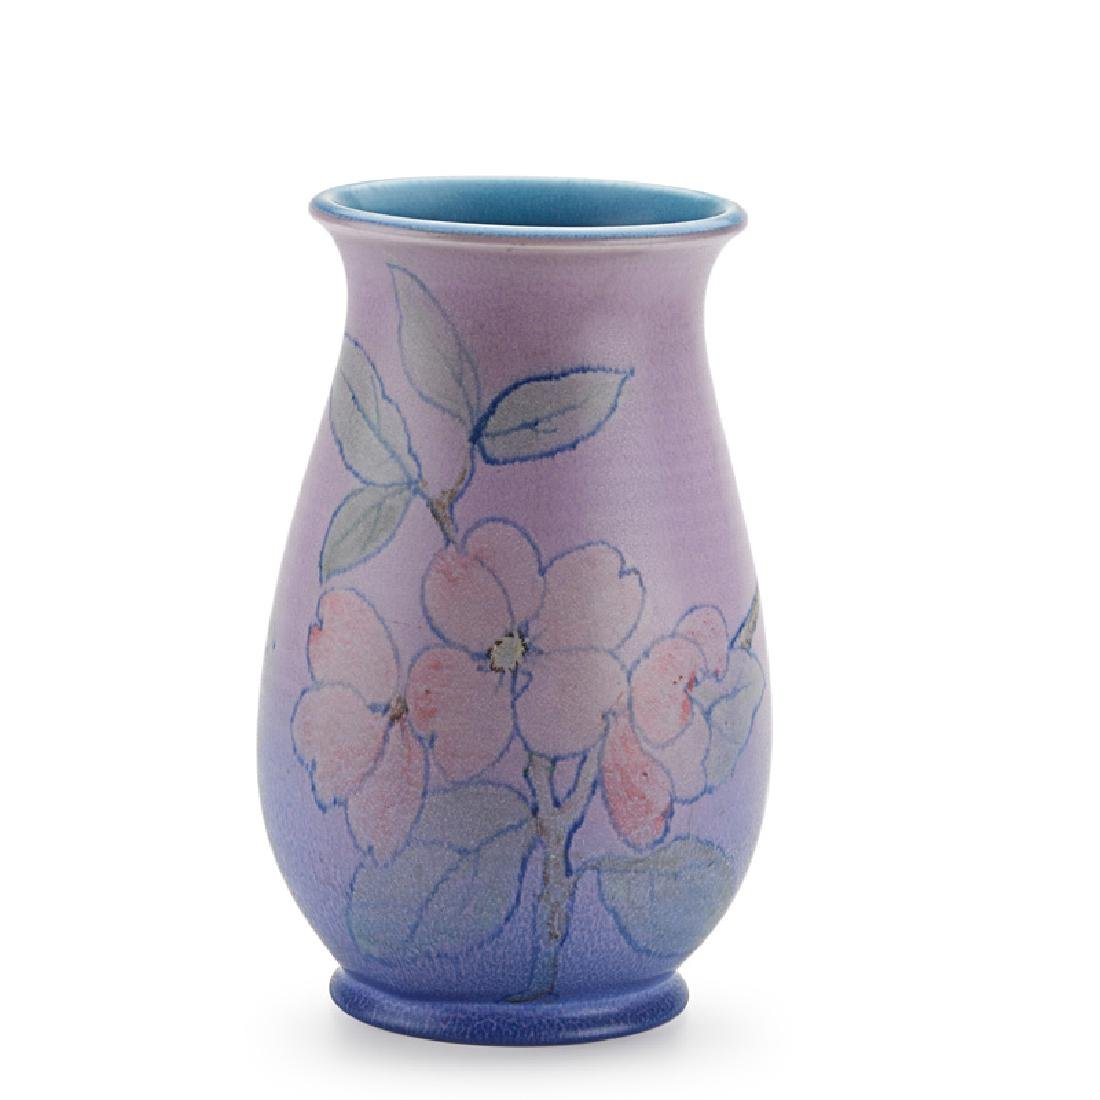 KATHERINE JONES; ROOKWOOD Double Vellum vase